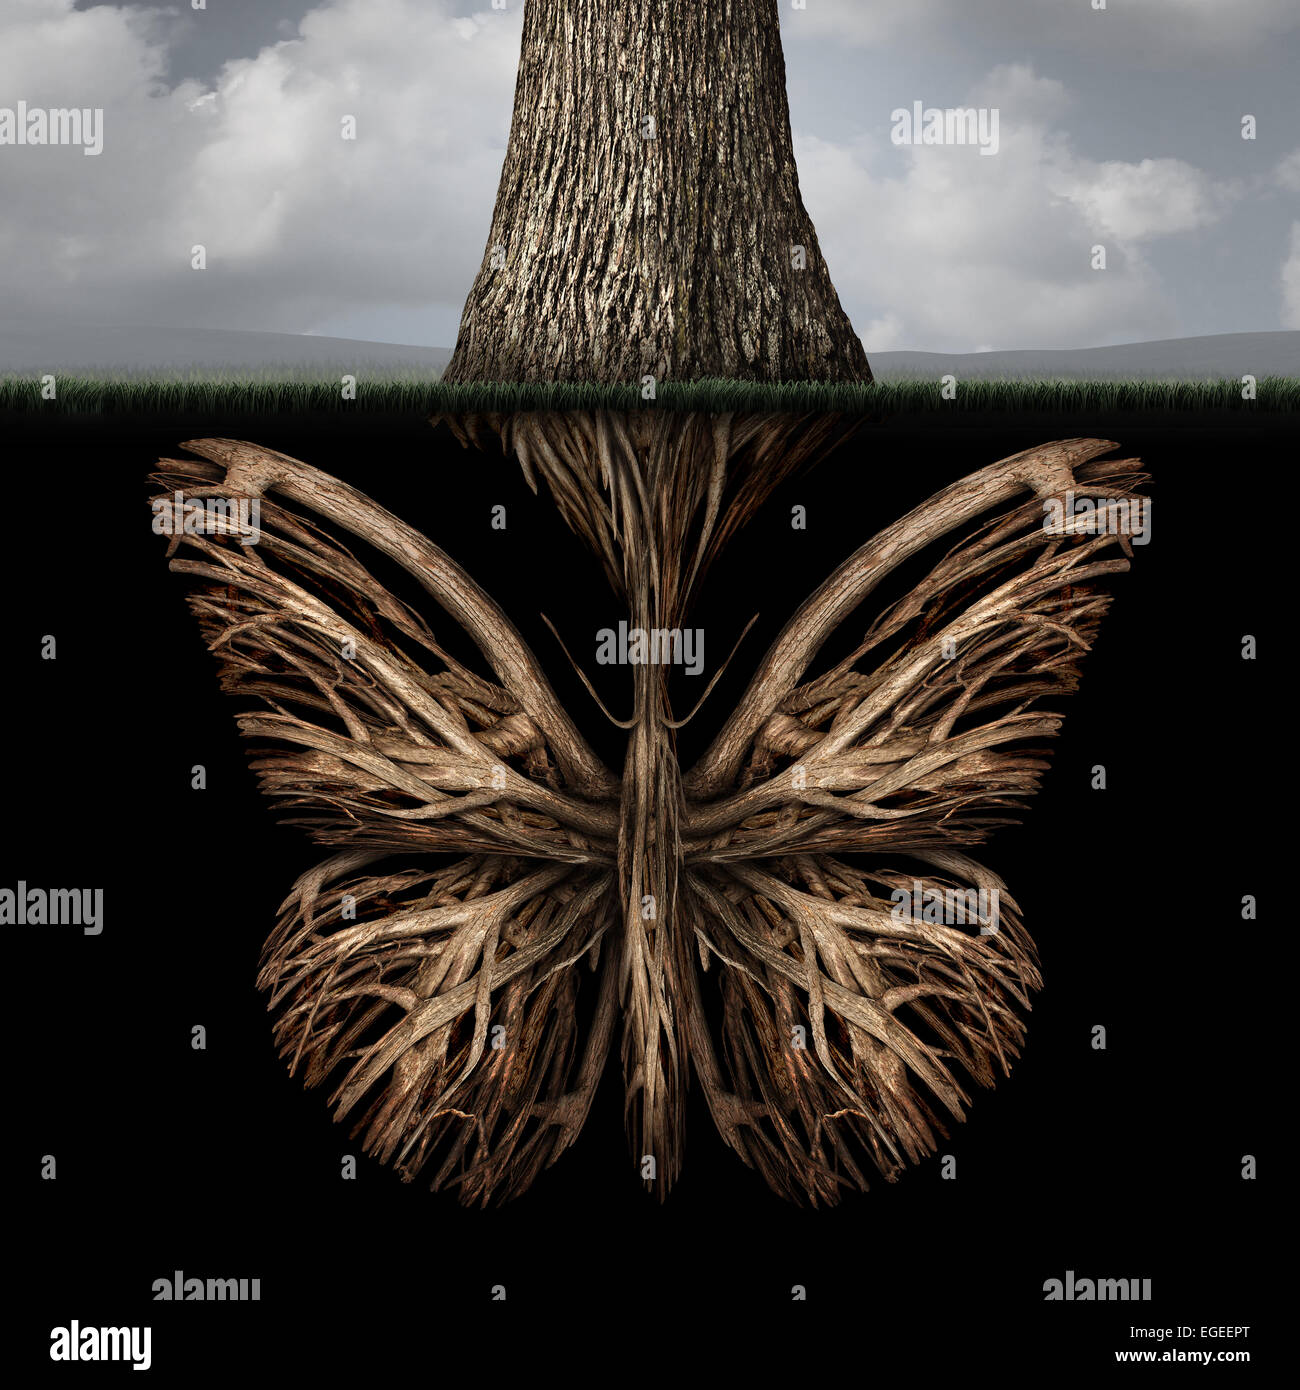 Creative roots concept as a tree with a root shaped as a butterfly as a powerful environmental metaphor or symbol - Stock Image